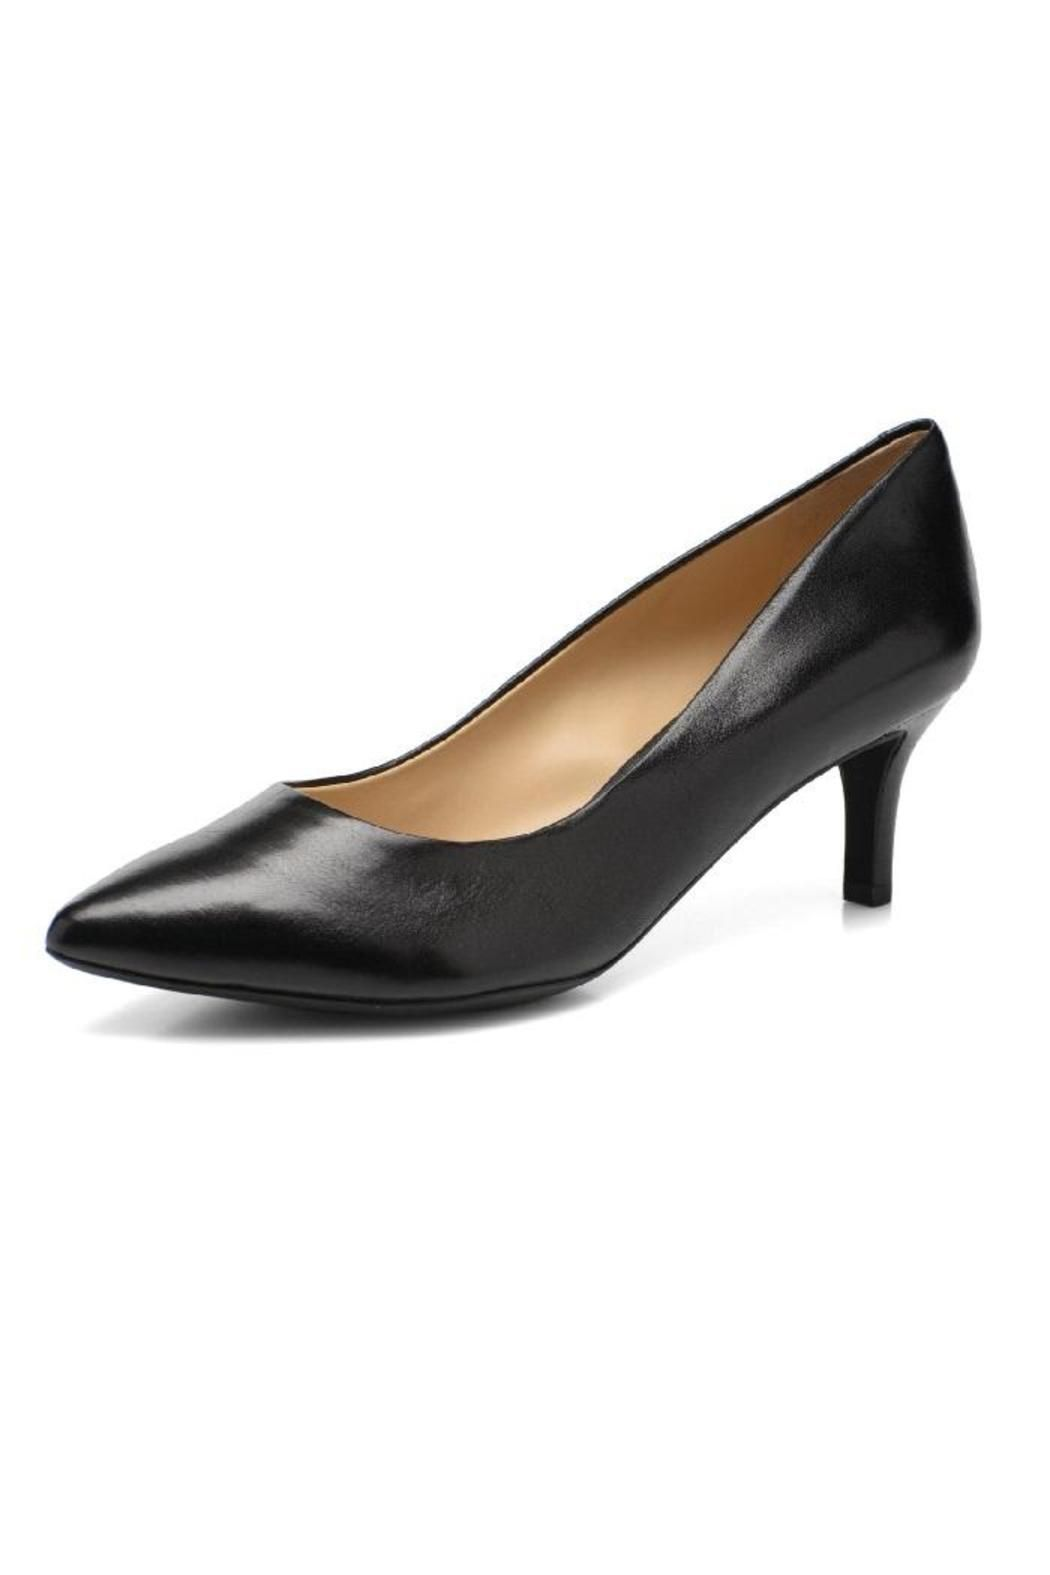 Criewiel Perfect For Right Me Ow And Later This Slingback Kitten